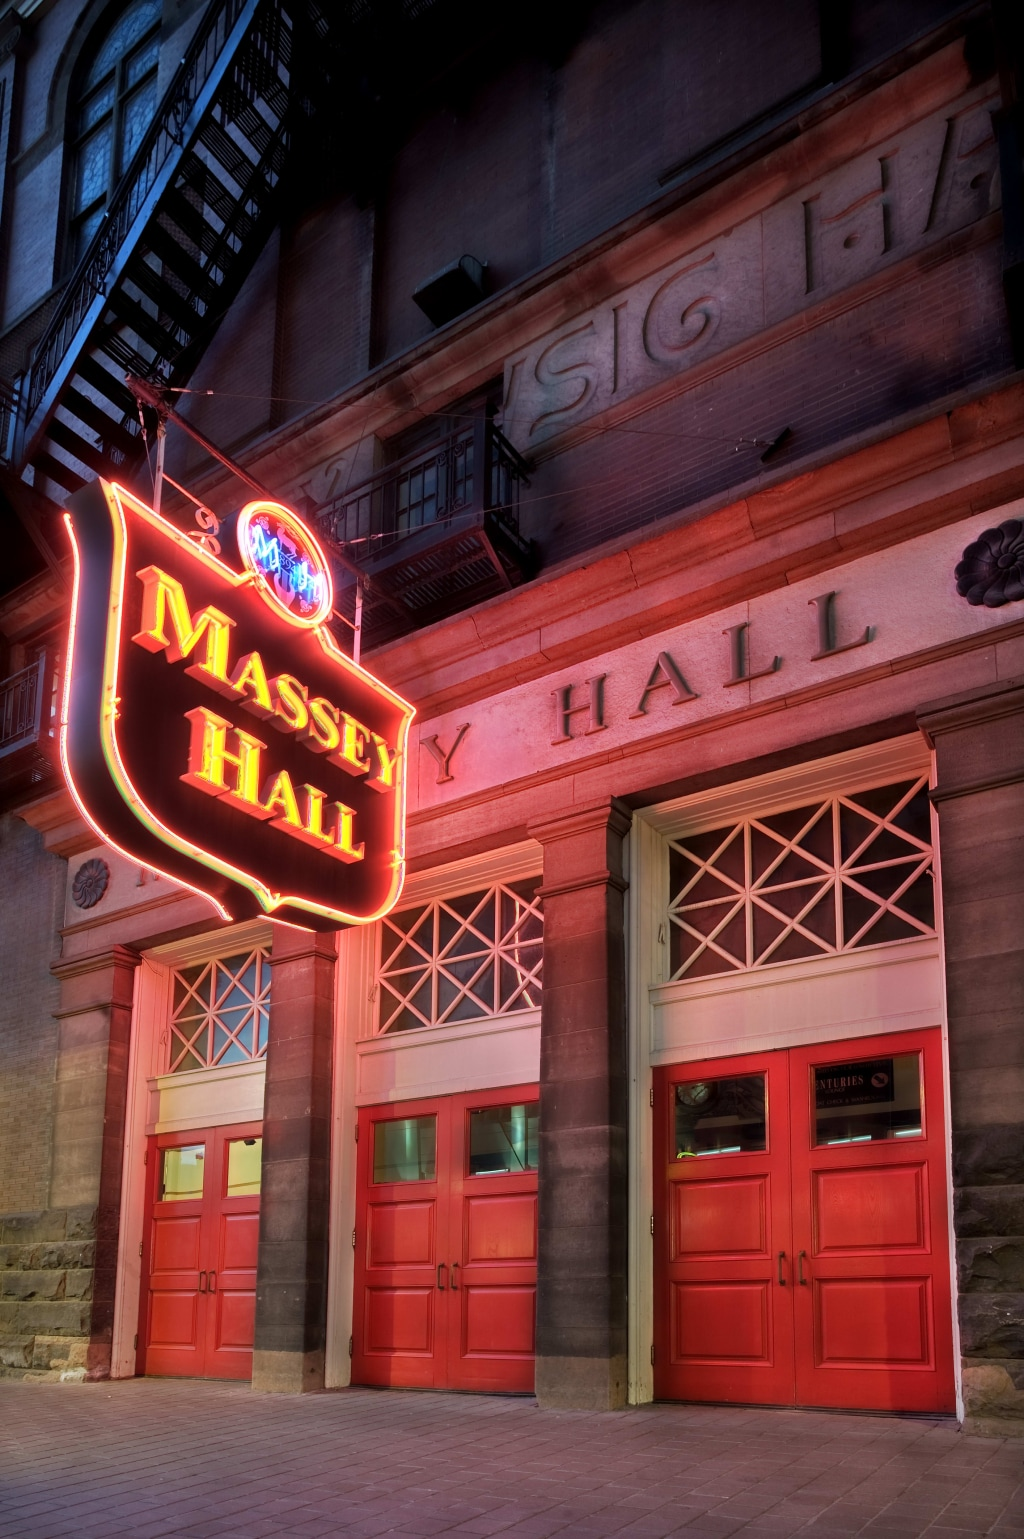 An exterior image of Massey Hall in colour, featuring its iconic neon signage and three bright red doors.